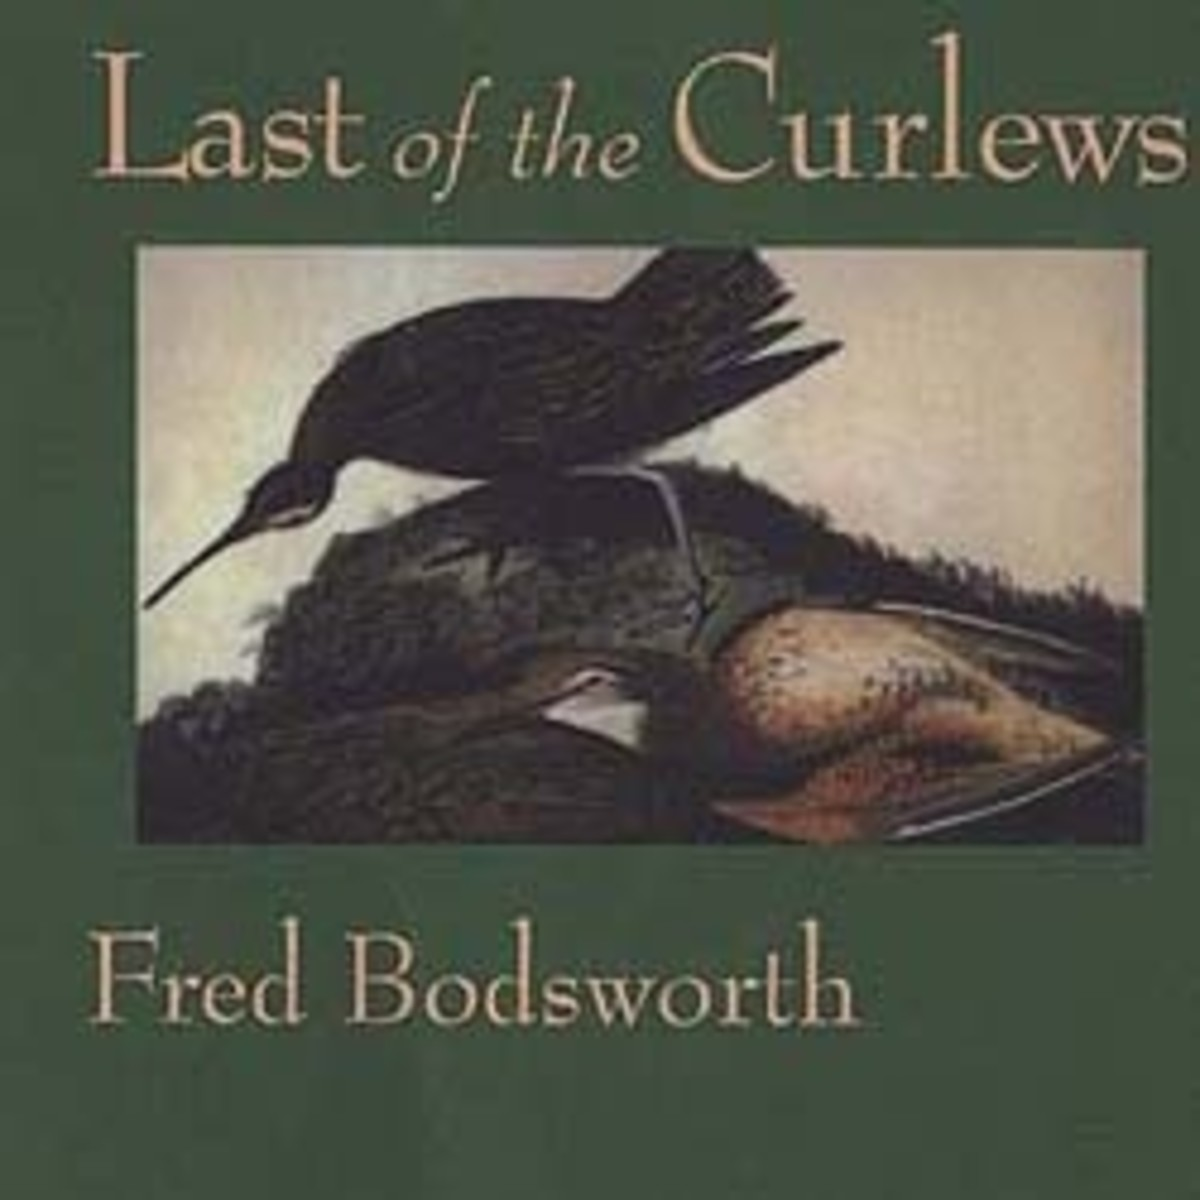 Last of the Curlews--Book and Movie Review